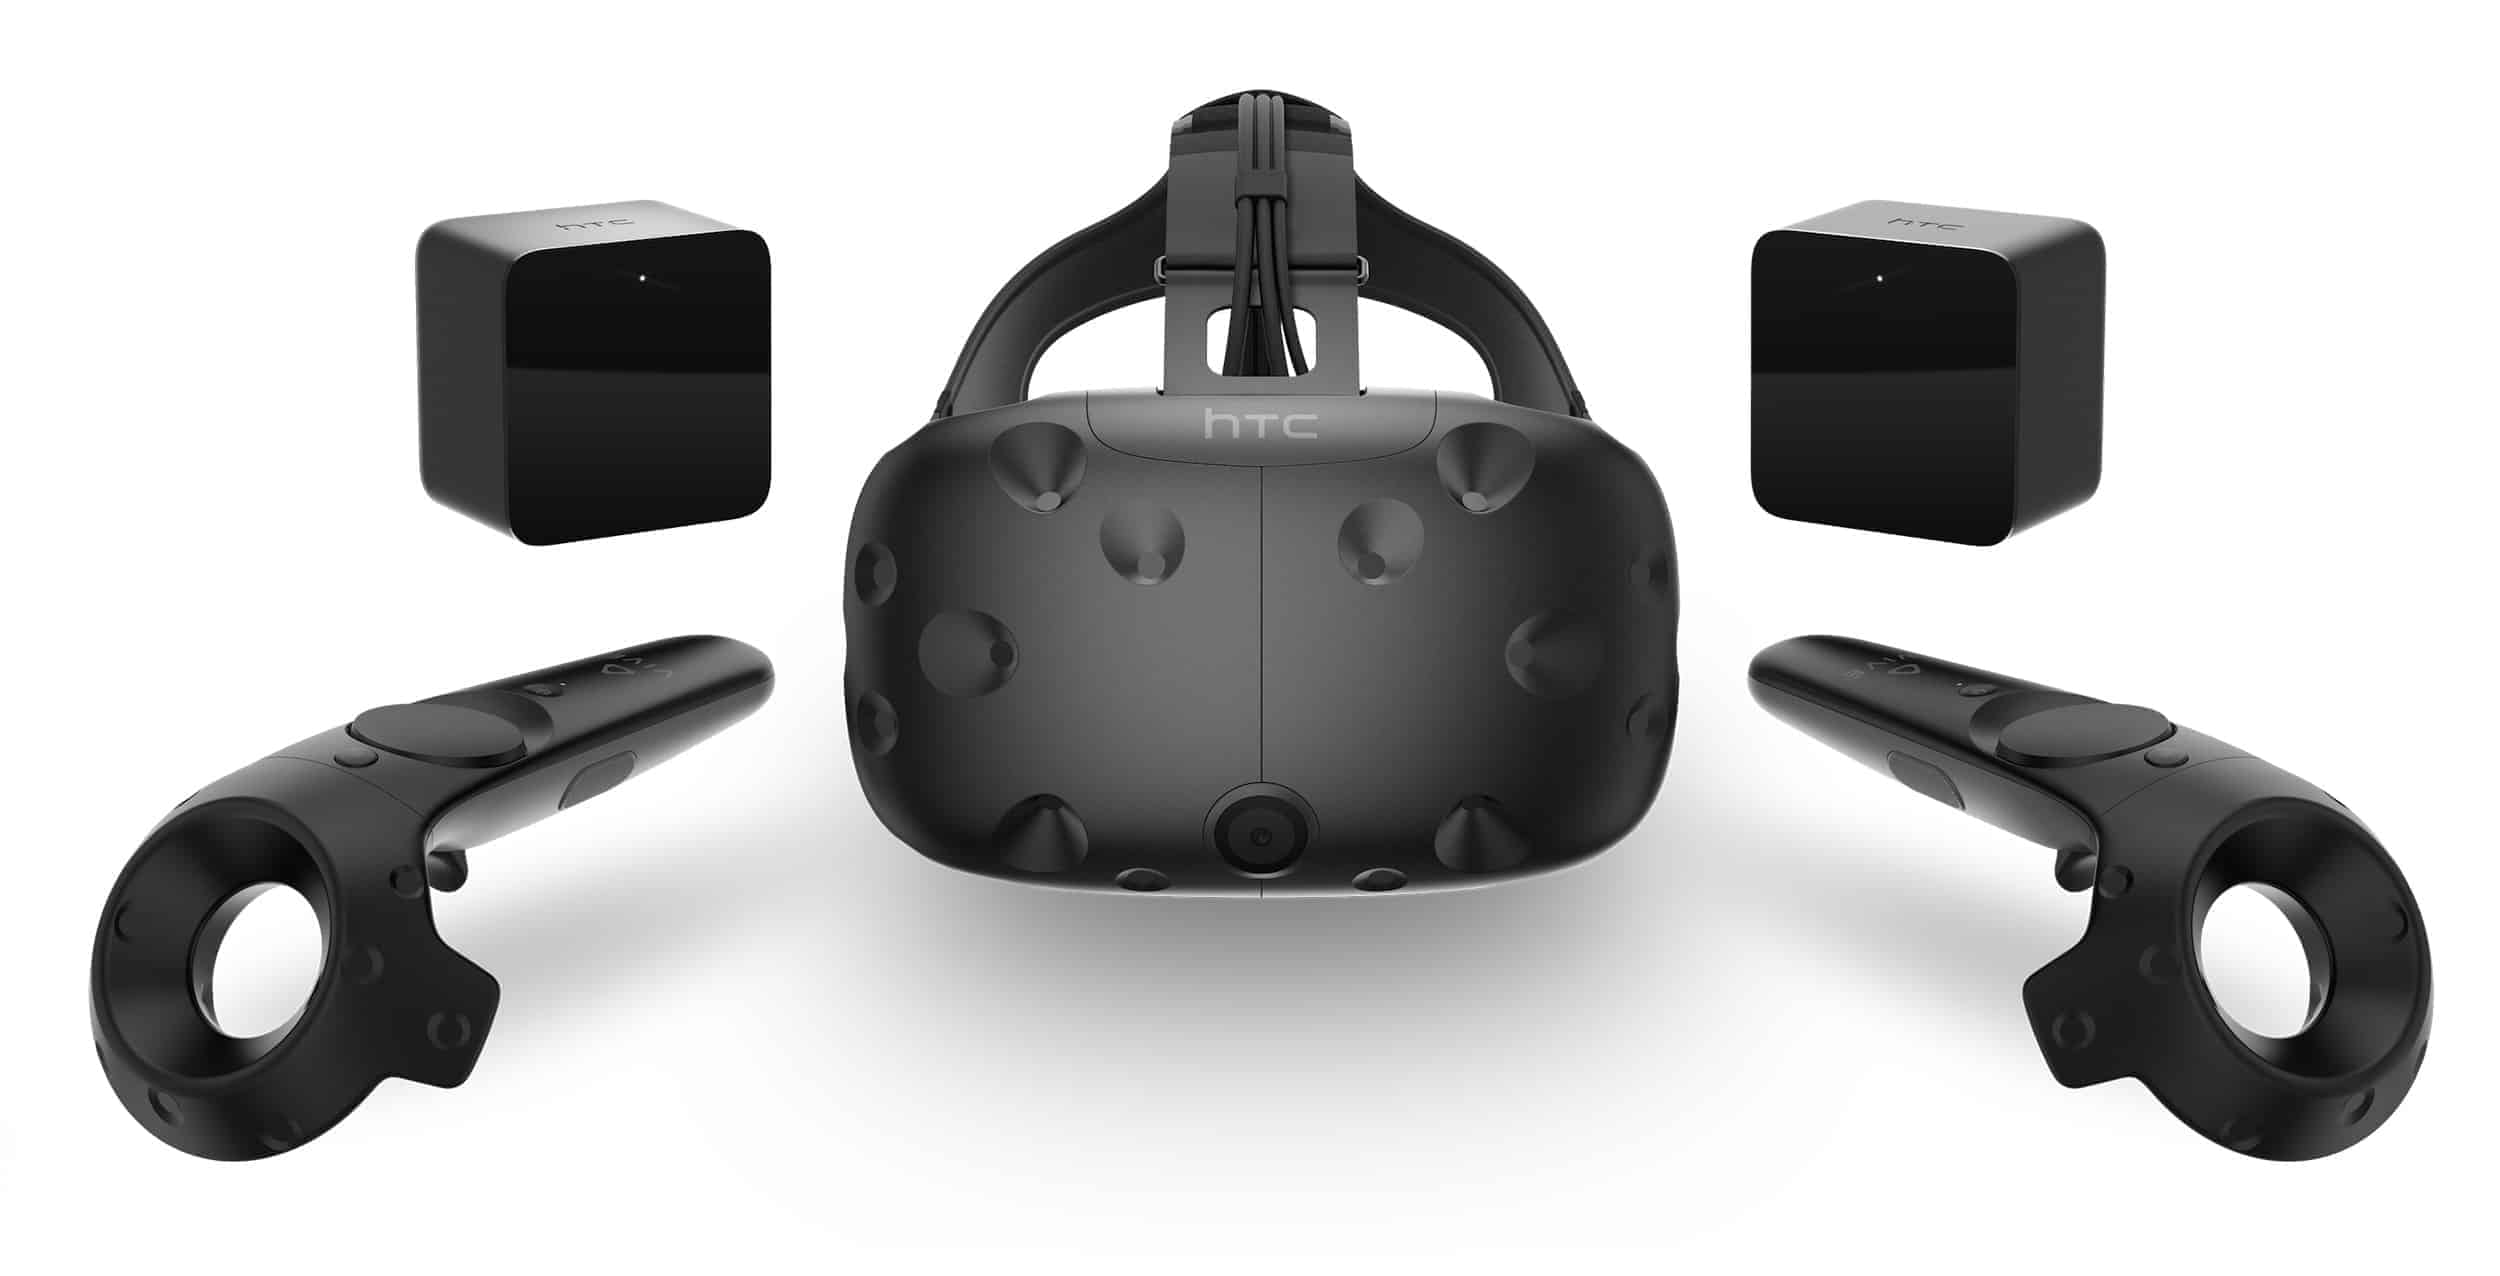 HTC Vive Lieferumfang